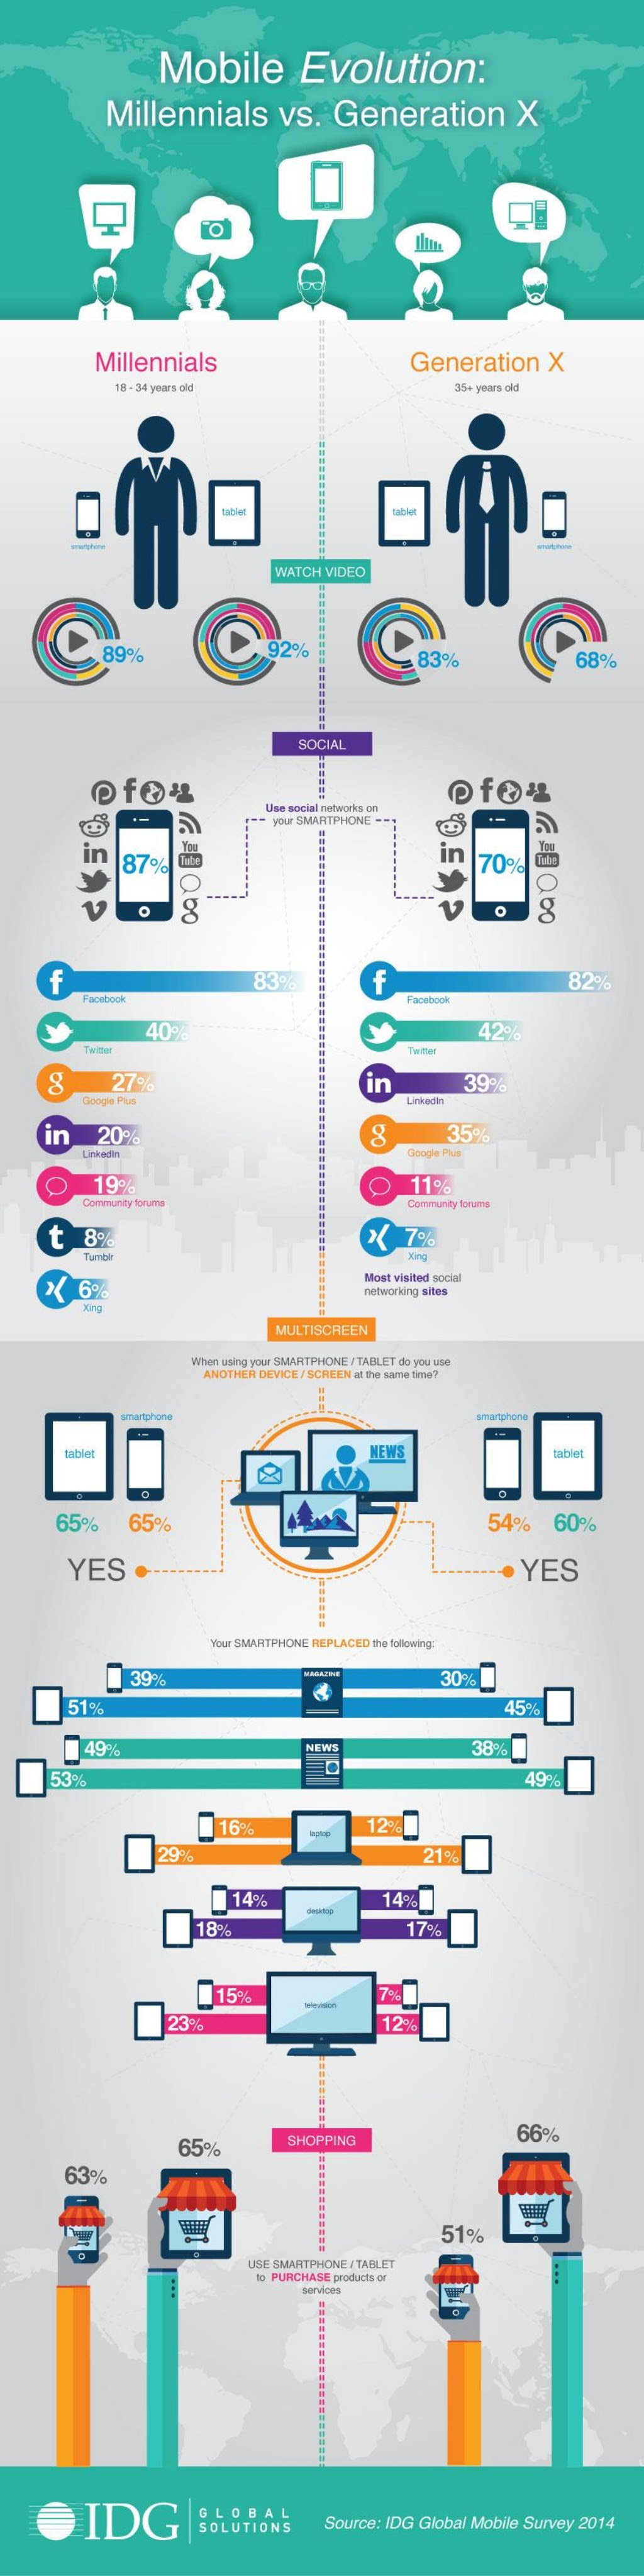 Mobile Evolution: Millennials vs. Generation X - infographic: The 'mobile evolution' is having a profound effect on consumers and businesses